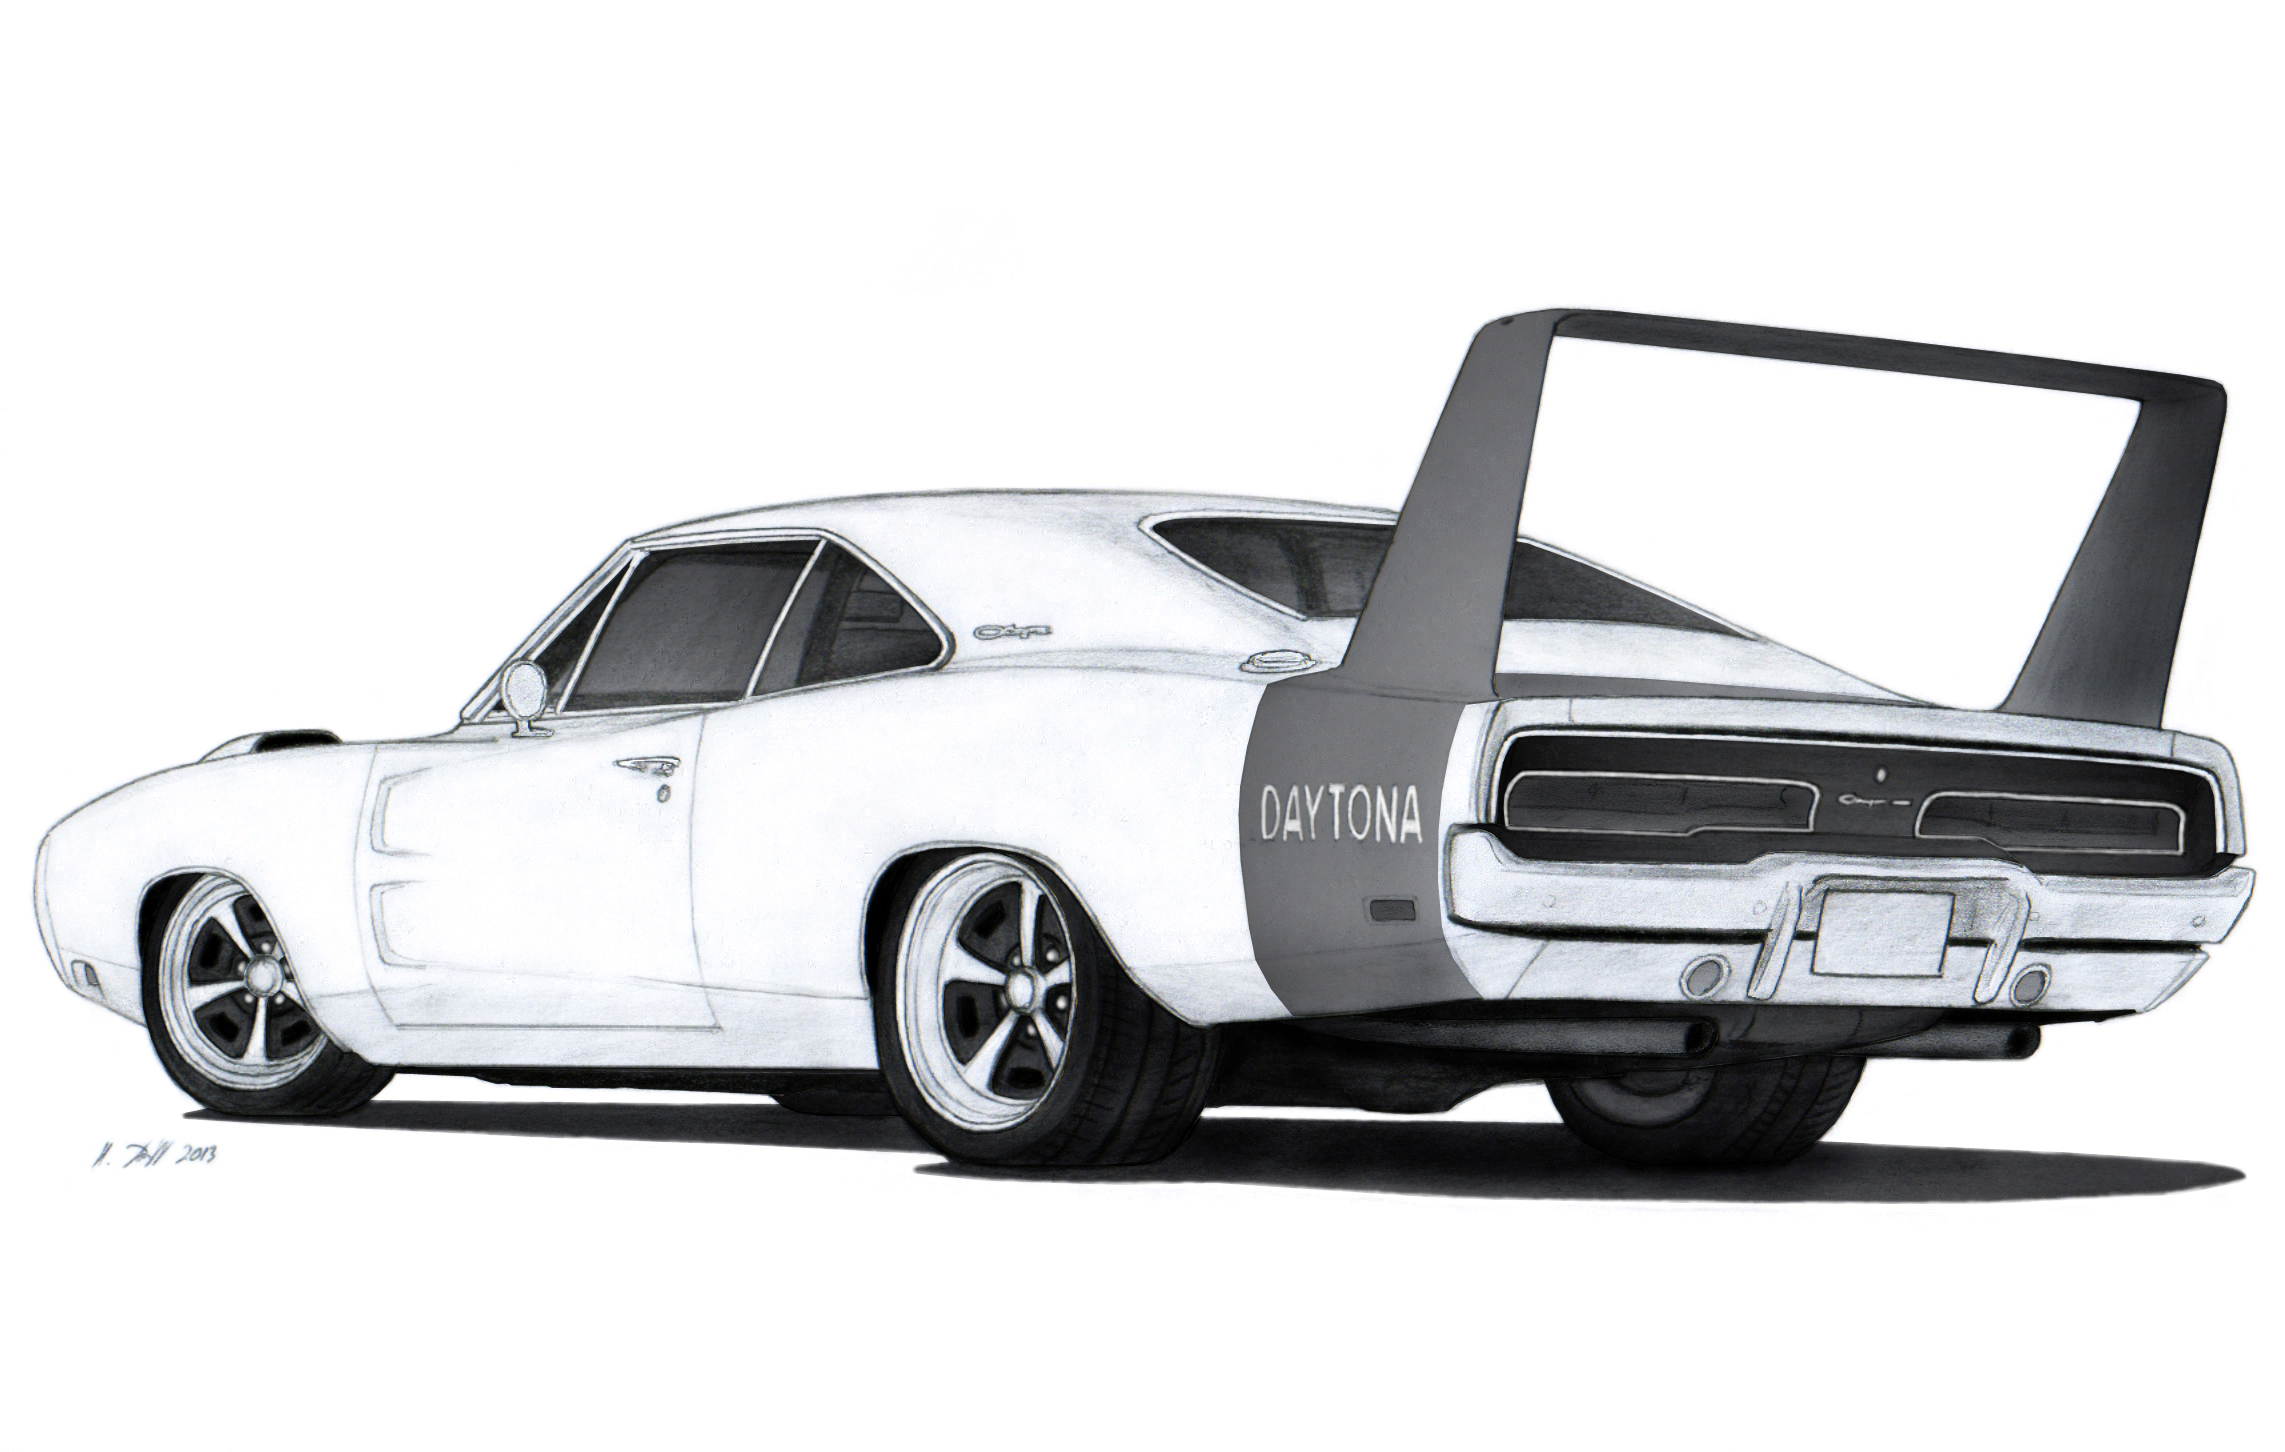 1969 dodge charger daytona drawing by vertualissimo on deviantart. Black Bedroom Furniture Sets. Home Design Ideas